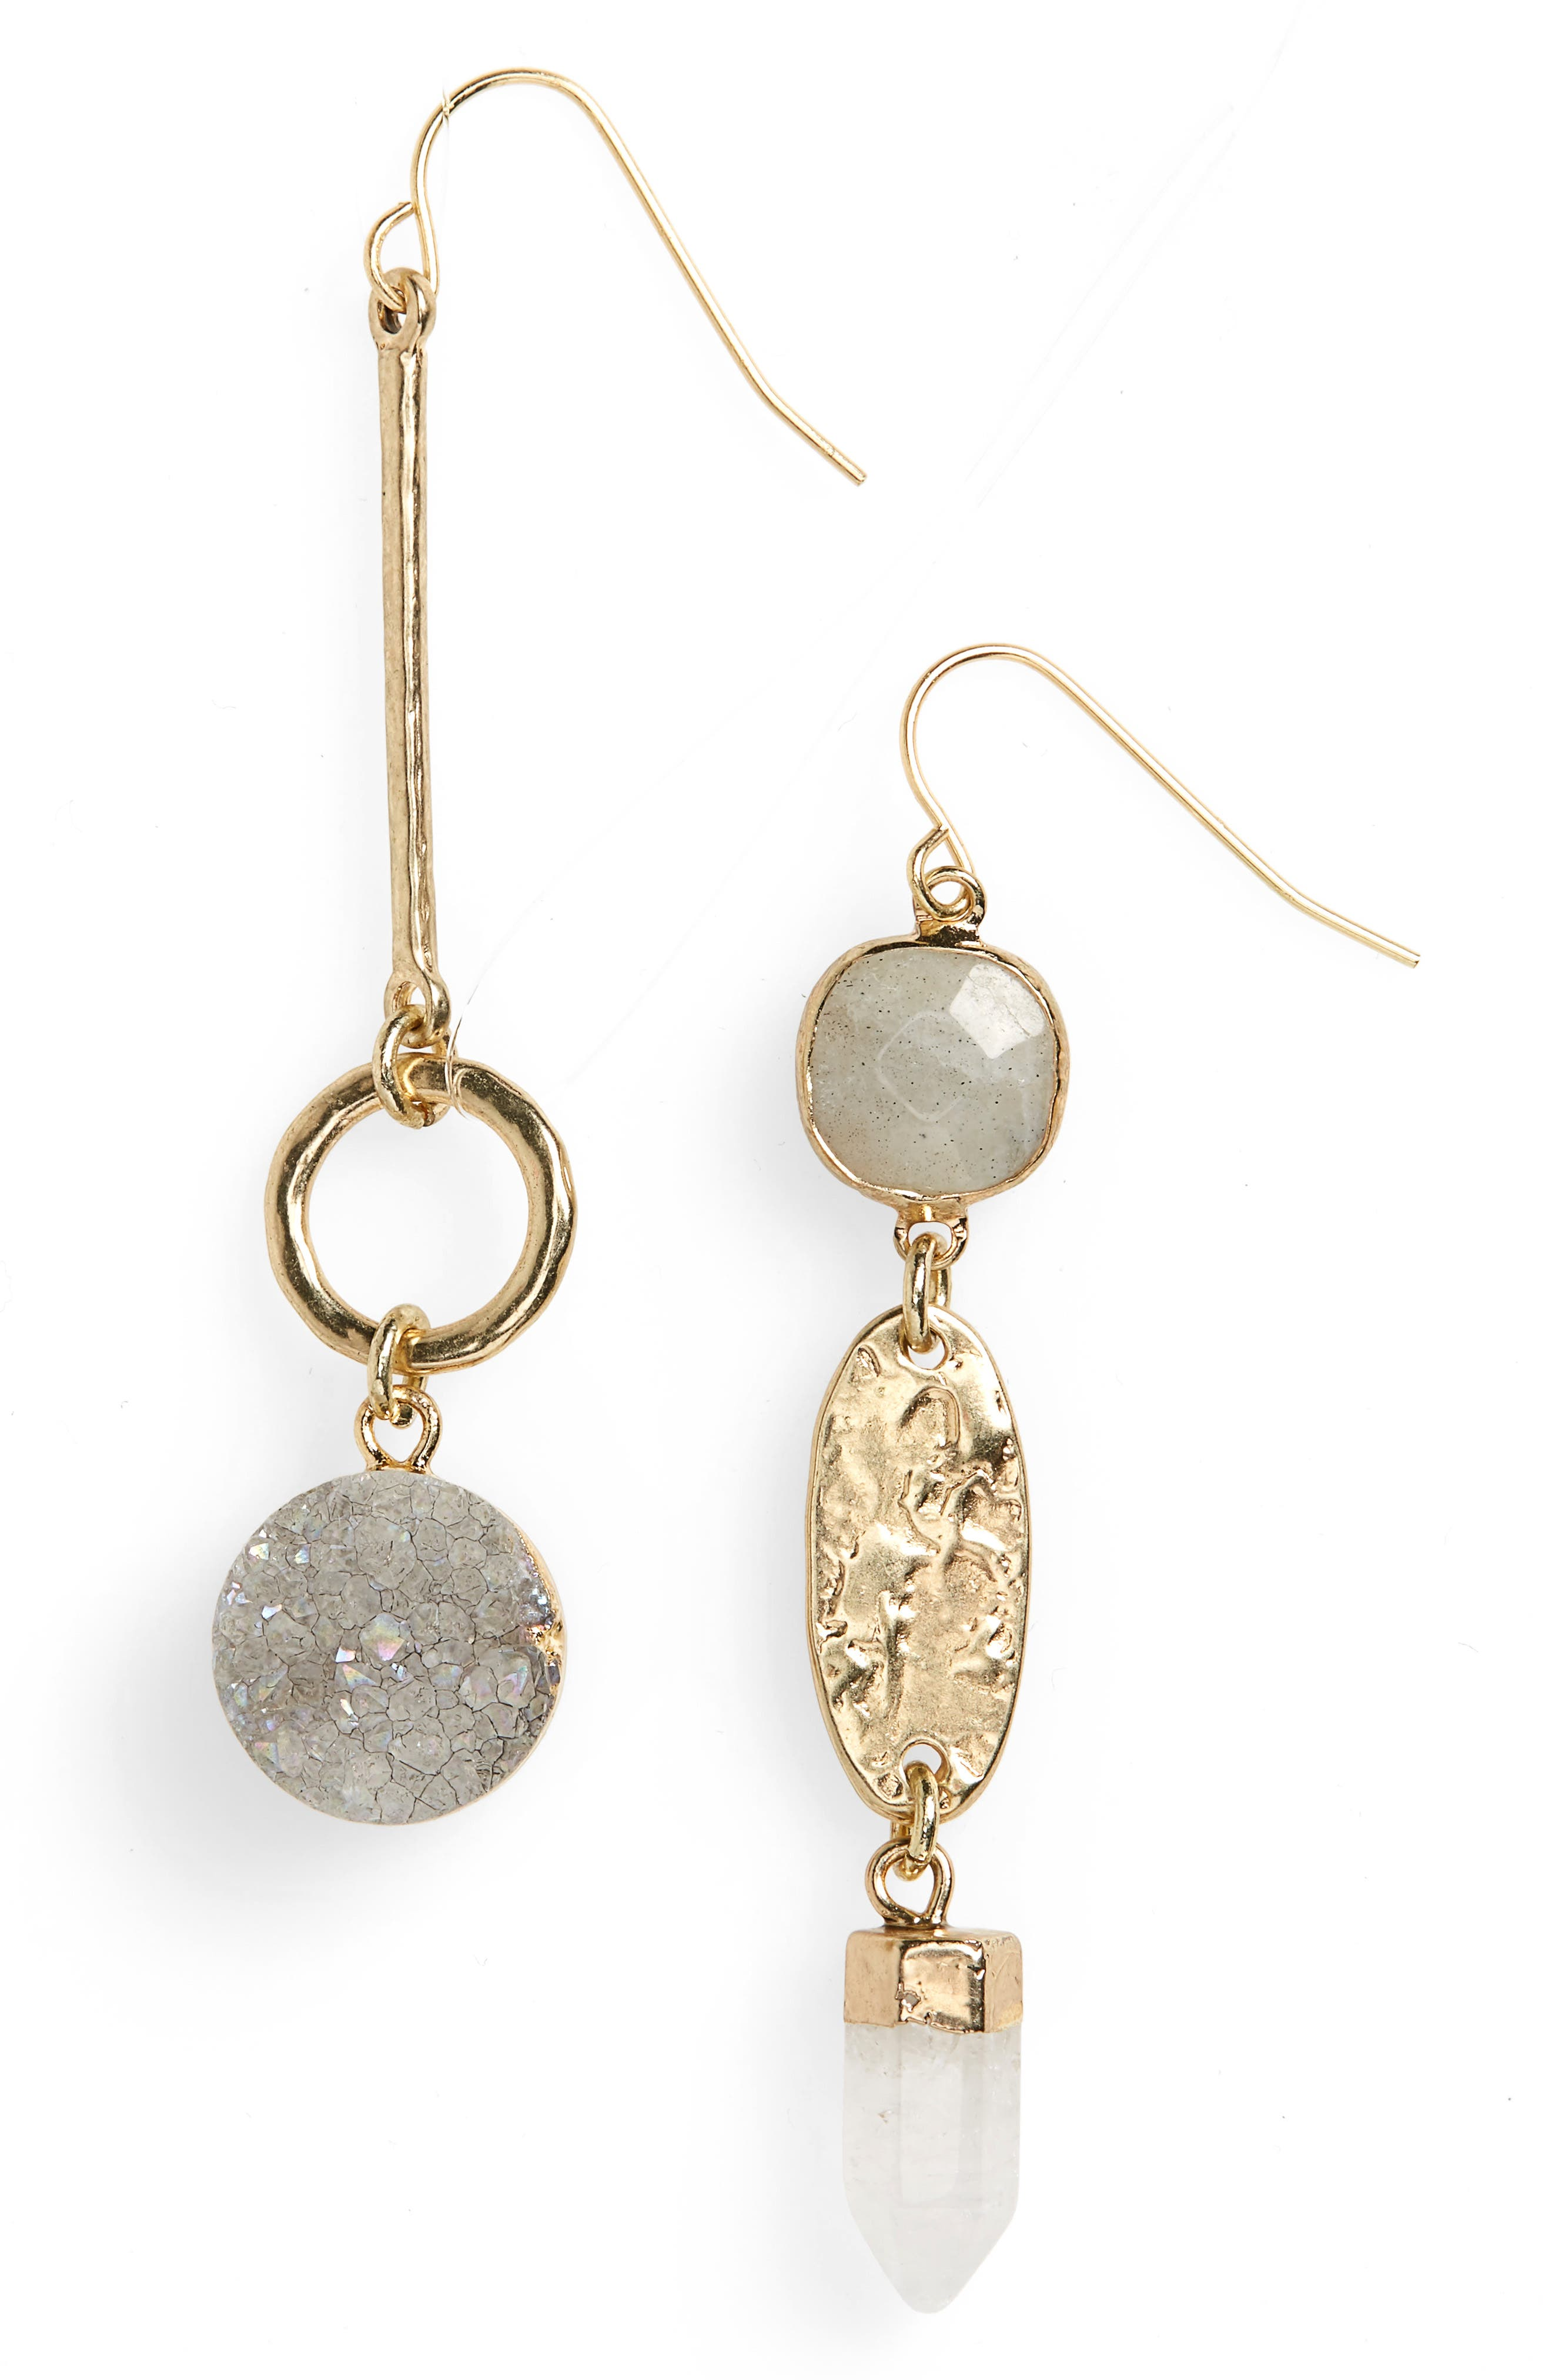 Semiprecious Mismatched Linear Drop Earrings,                             Main thumbnail 1, color,                             White- Gold